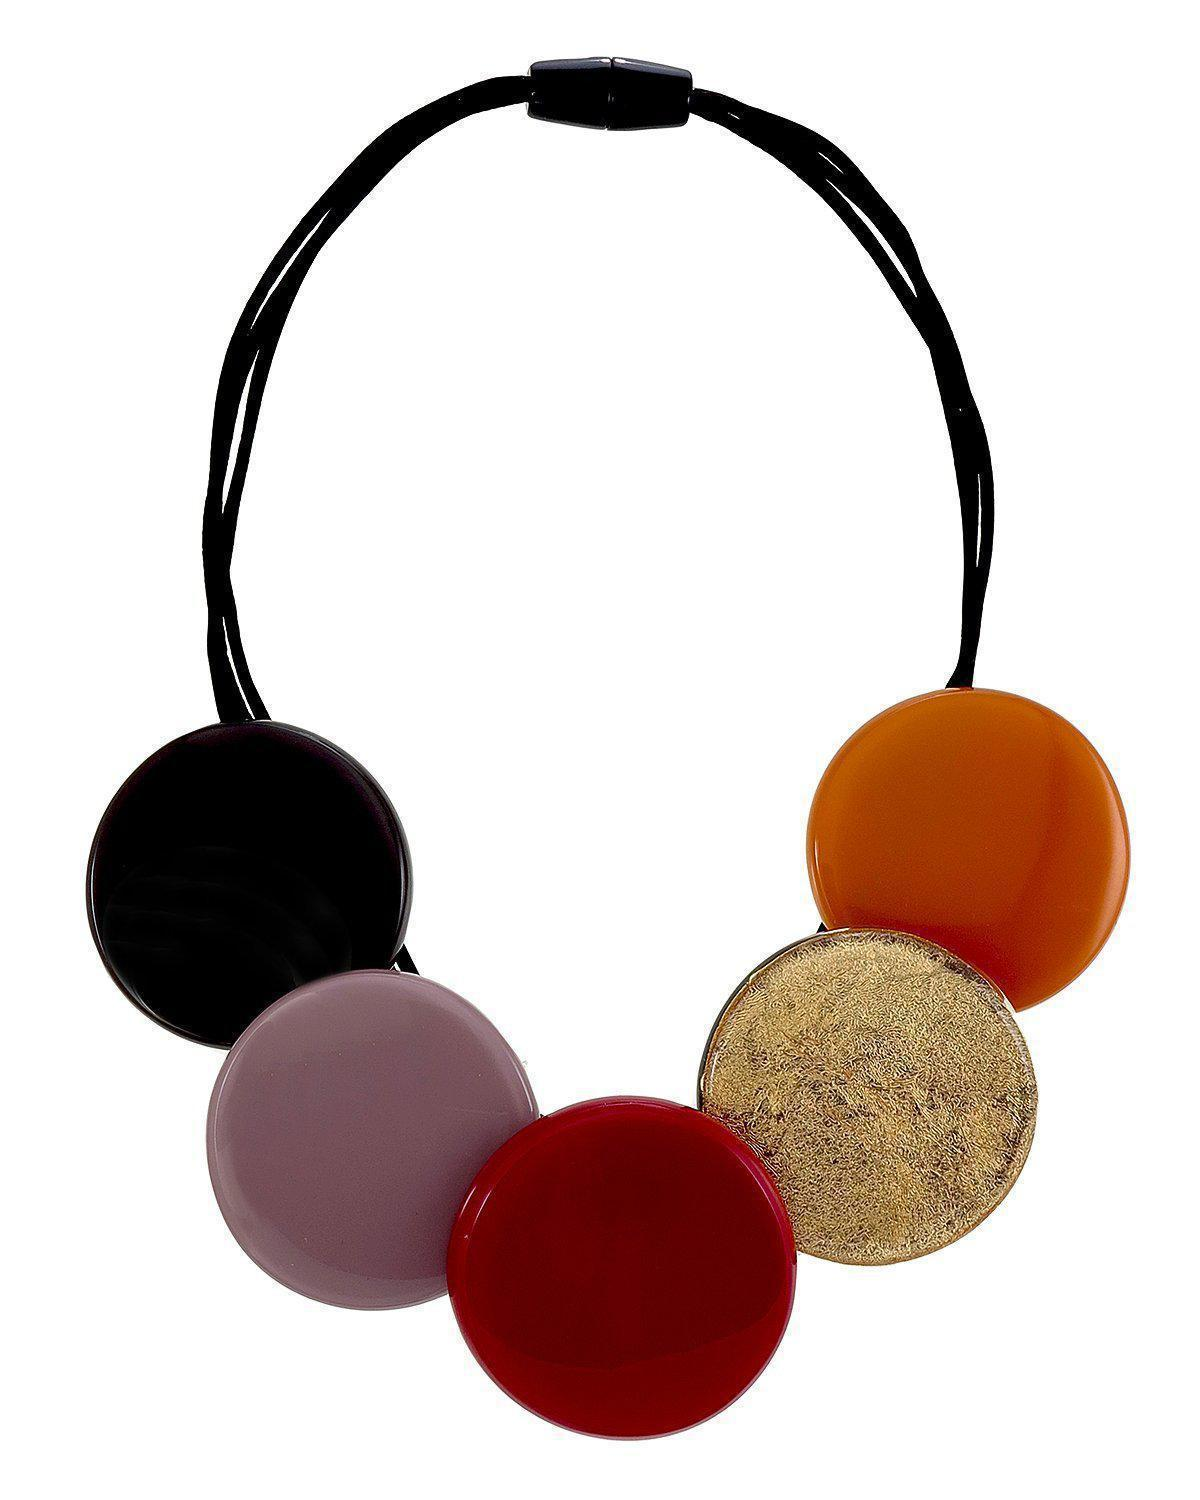 Zsiska A Round Red, Mauve and Gold Short Necklace - choose small or large circles